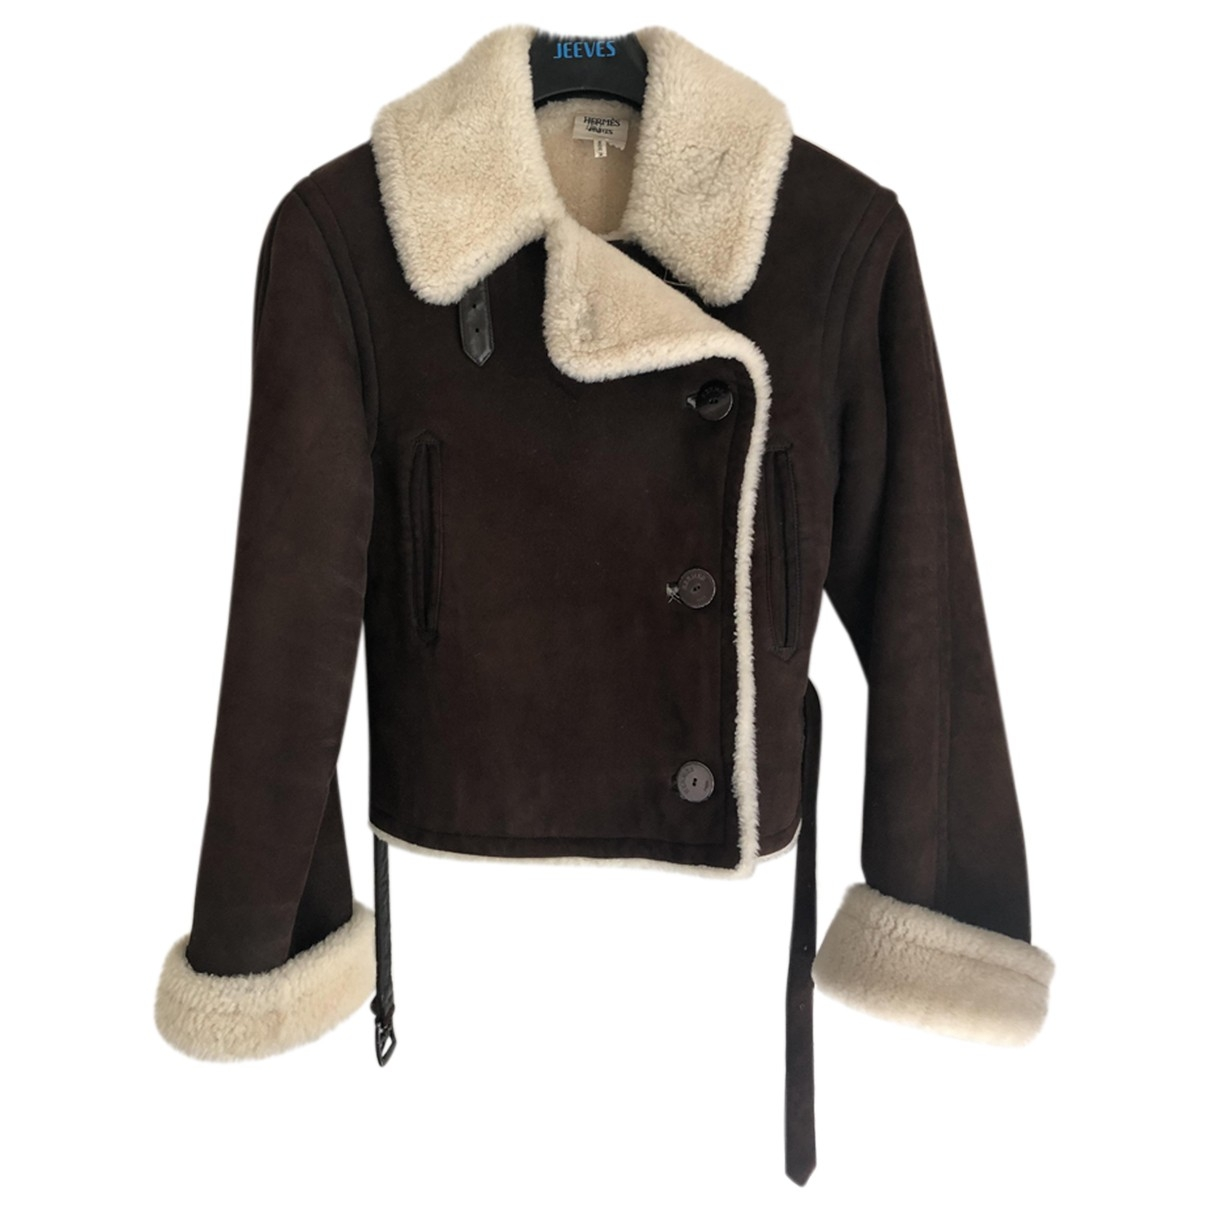 Hermès \N Brown Shearling Leather jacket for Women 36 FR